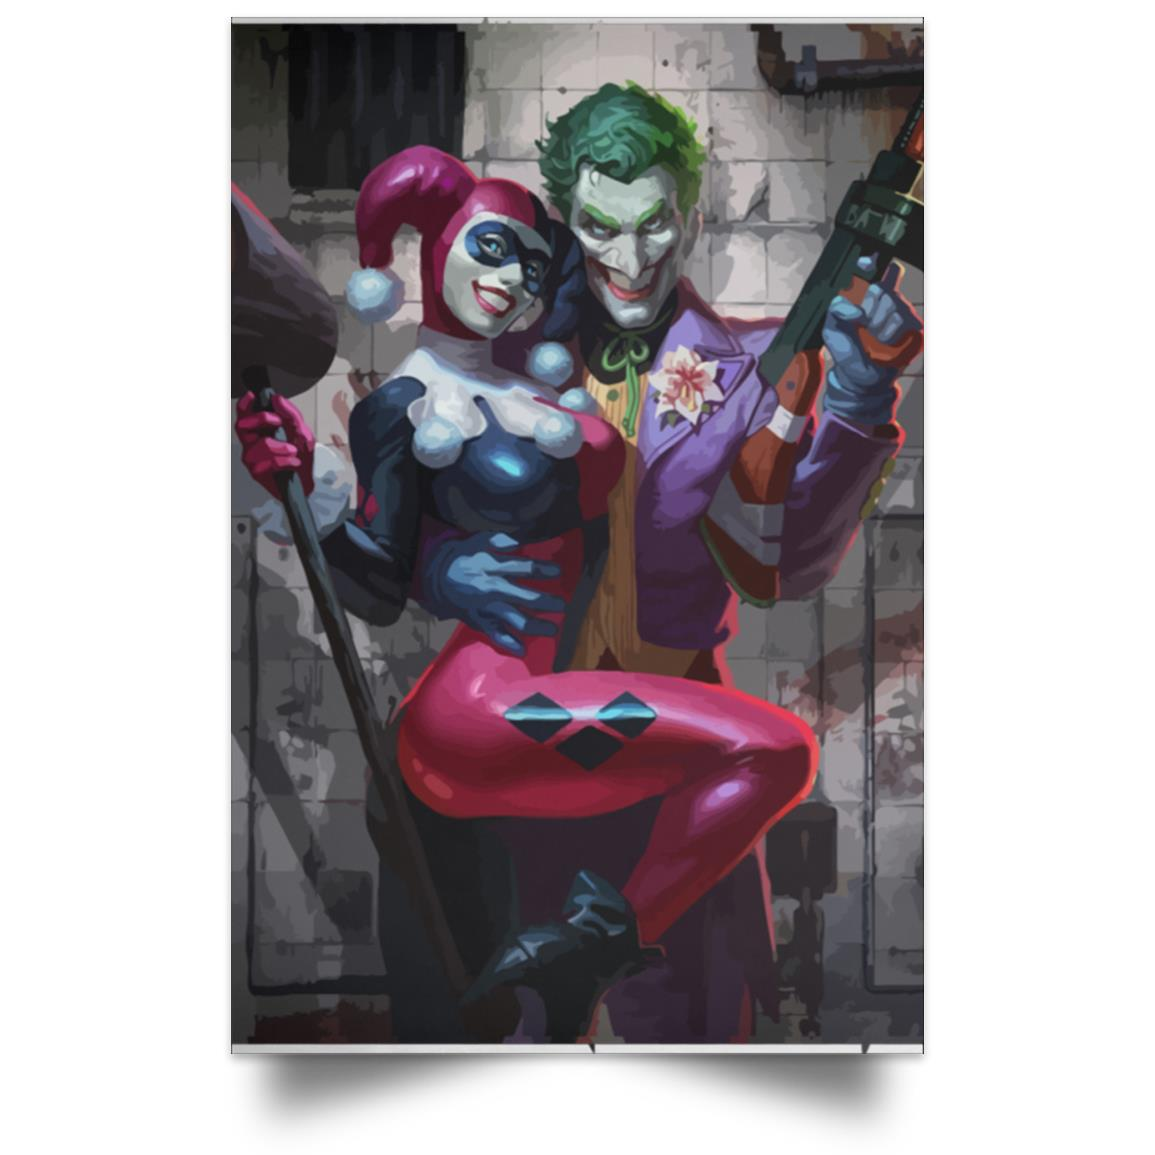 JOKER AND HARLEY QUINN TOGETHER POSTER 1